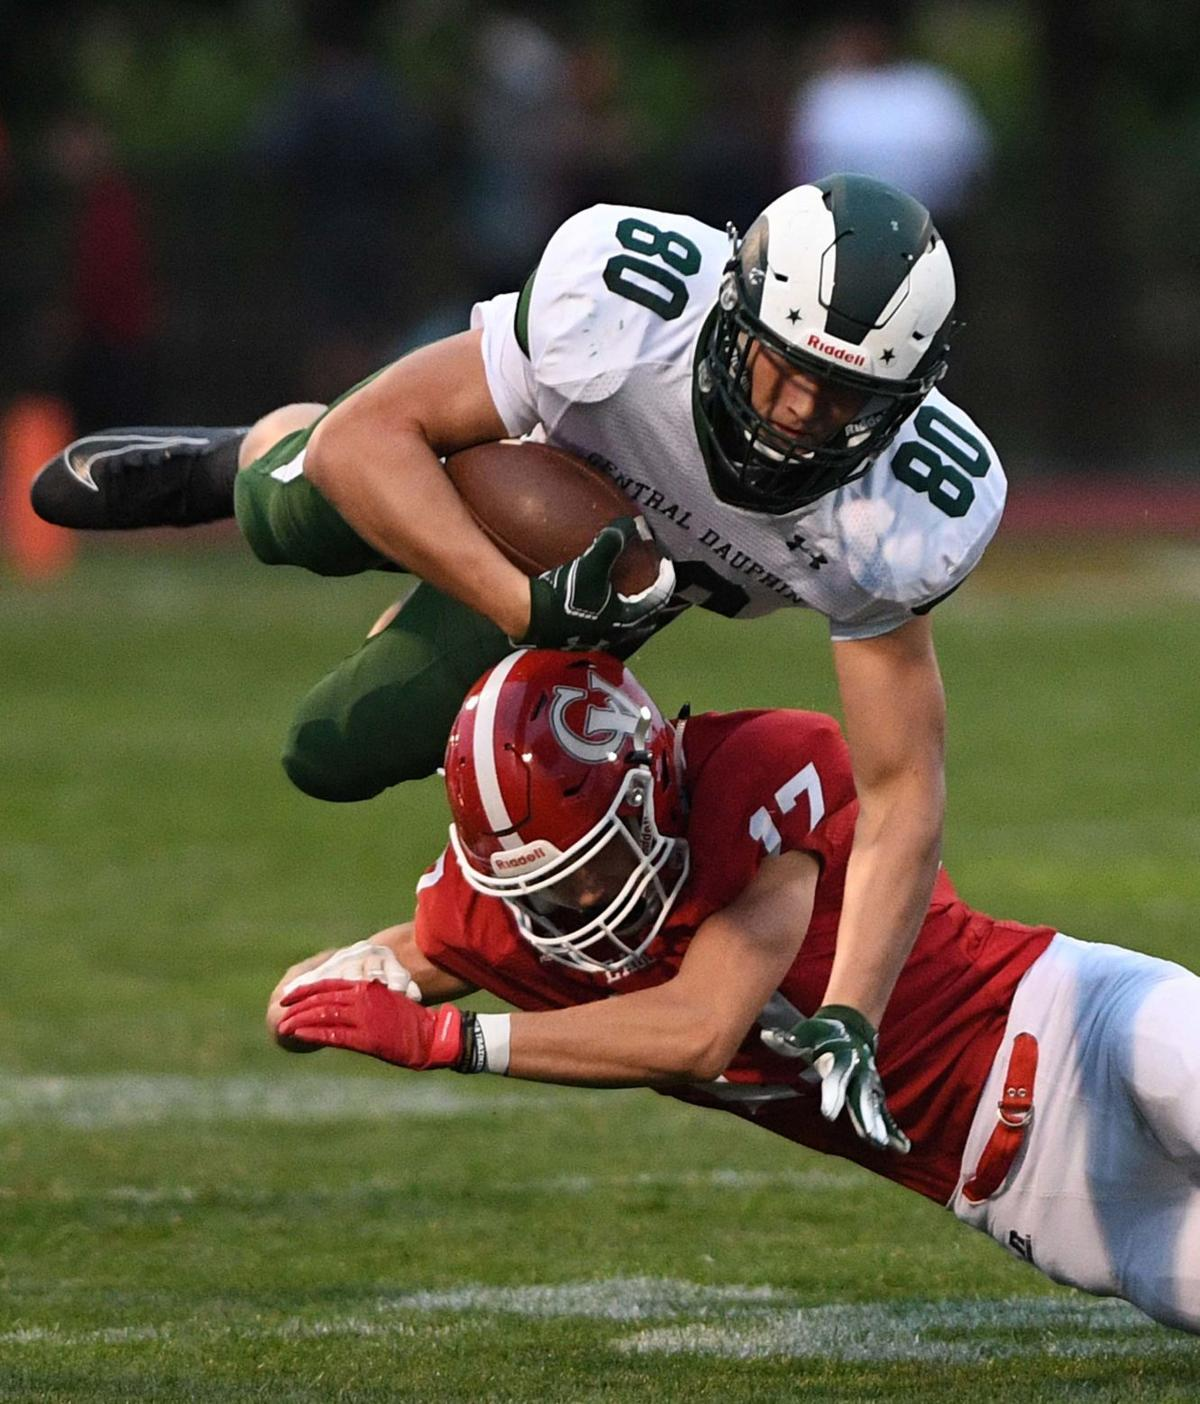 Cumberland Valley Central Dauphin Football 2